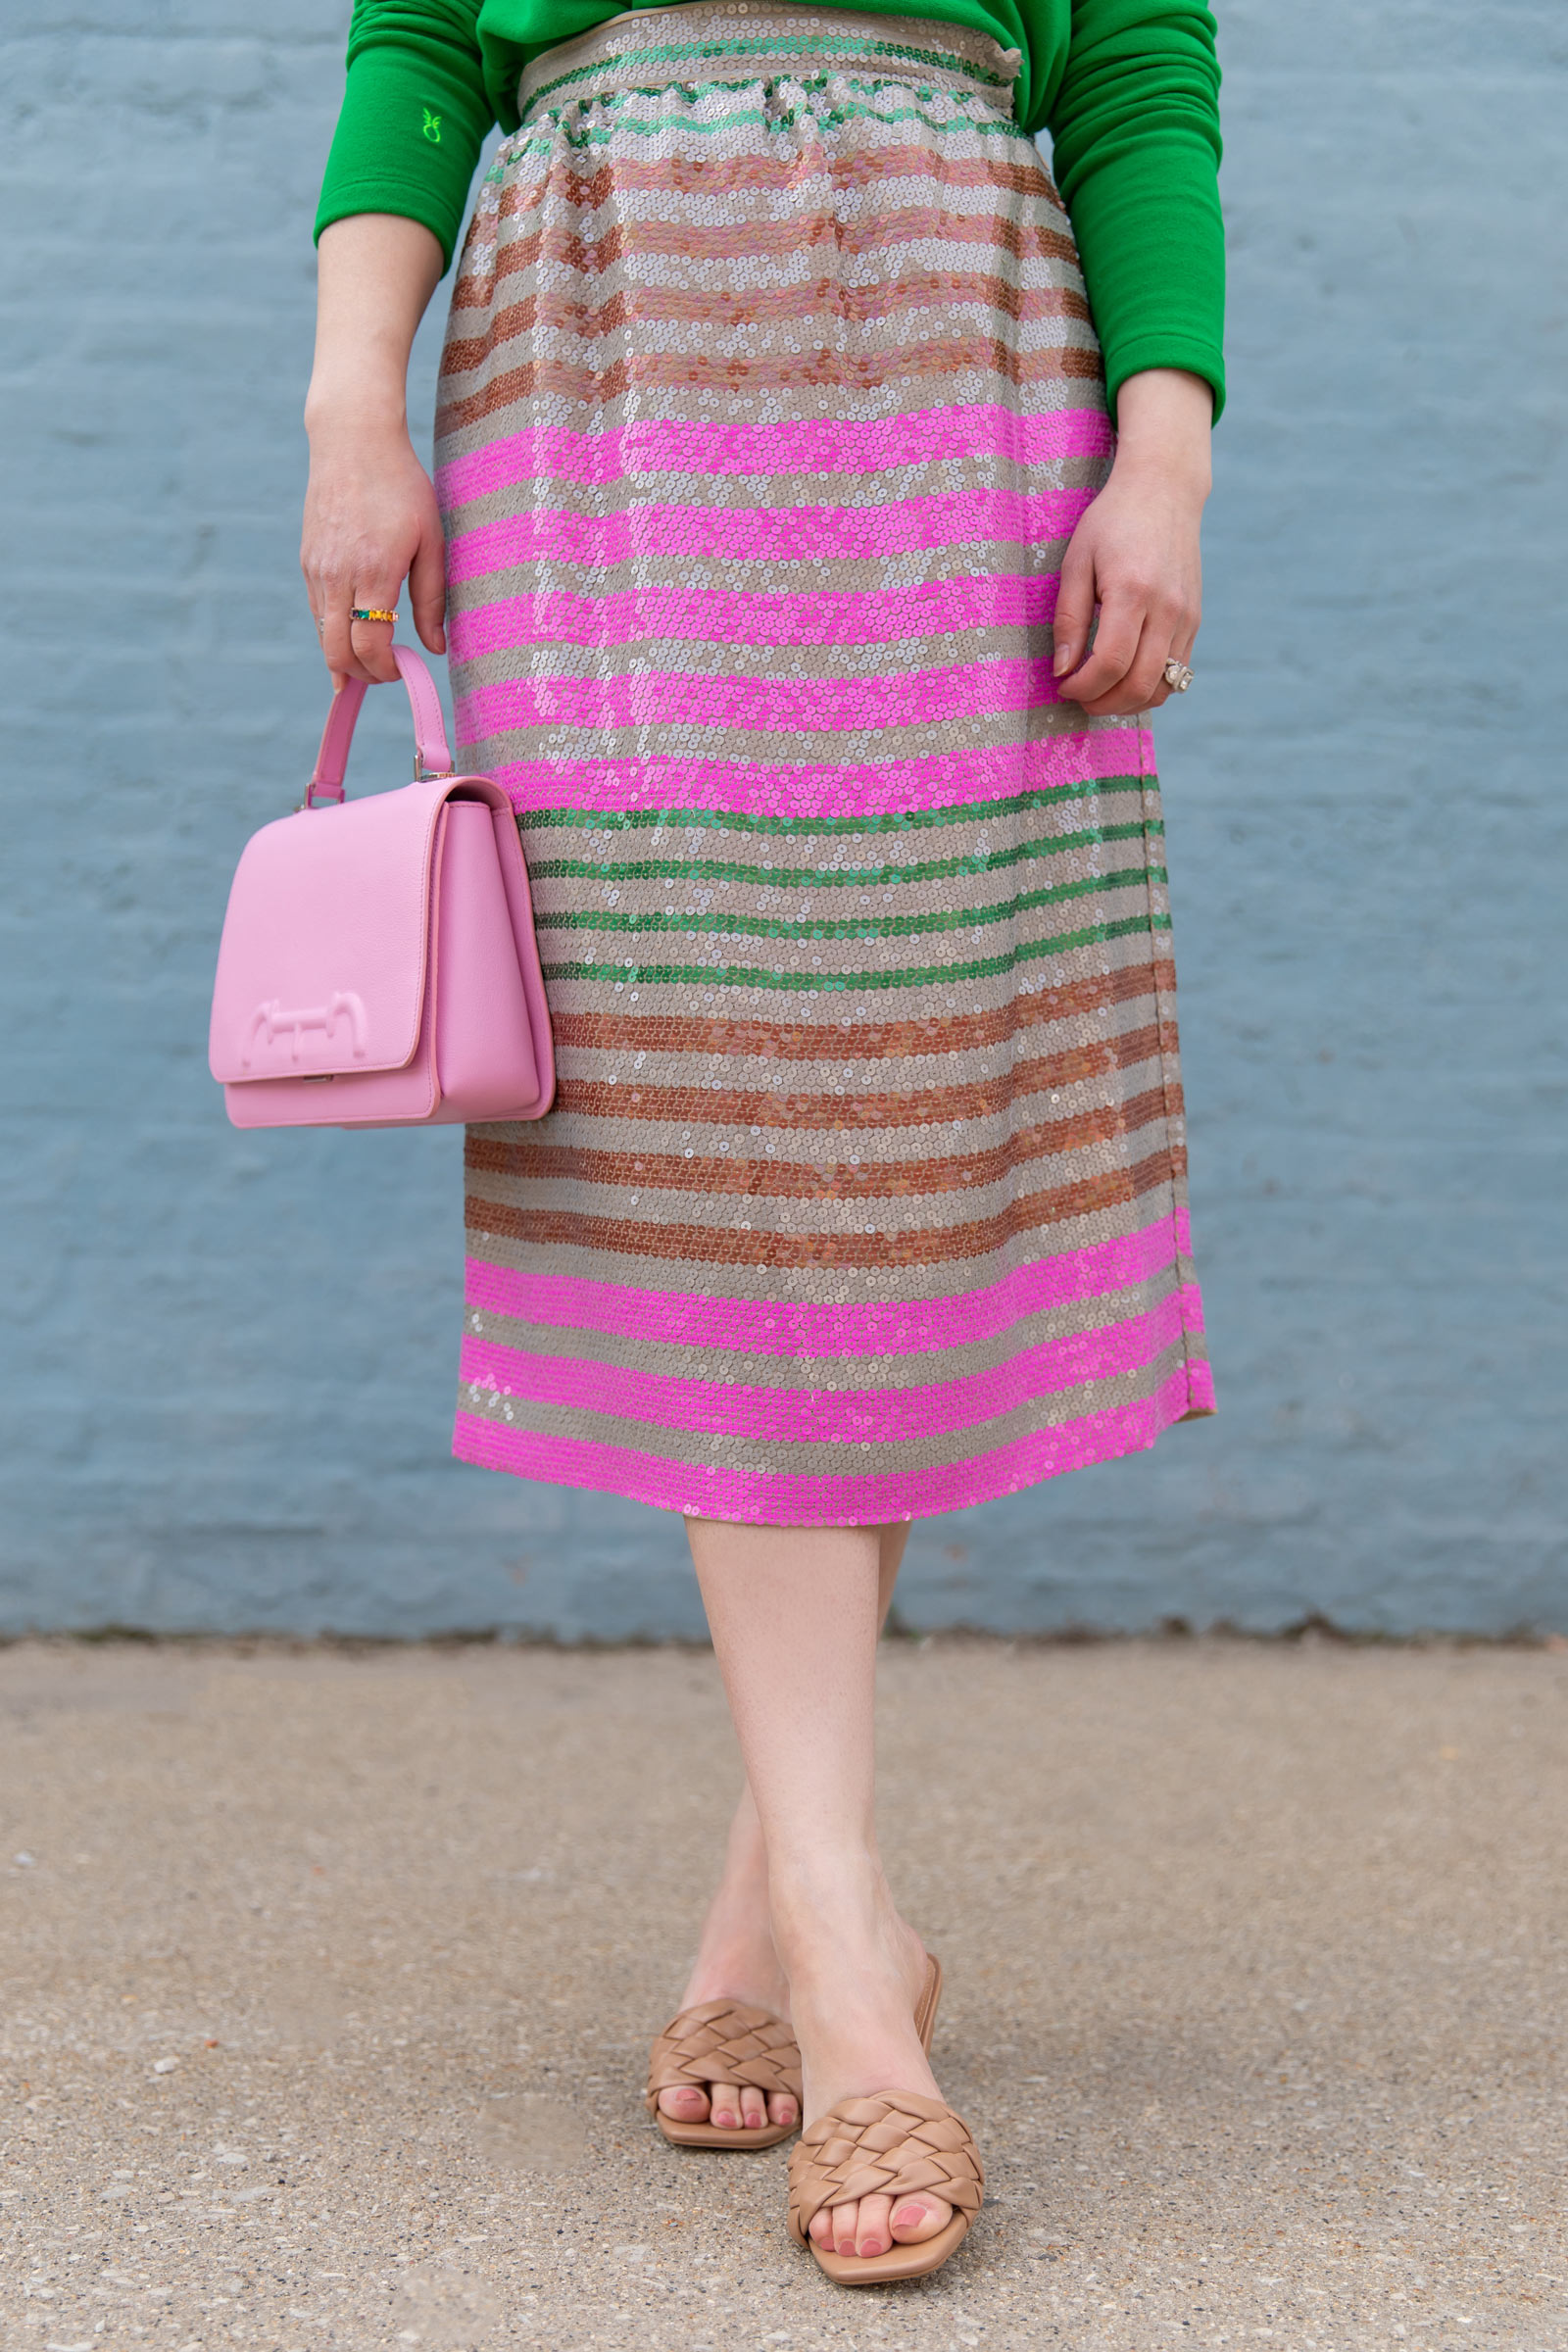 J. Crew Collection Stripe Sequin Skirt